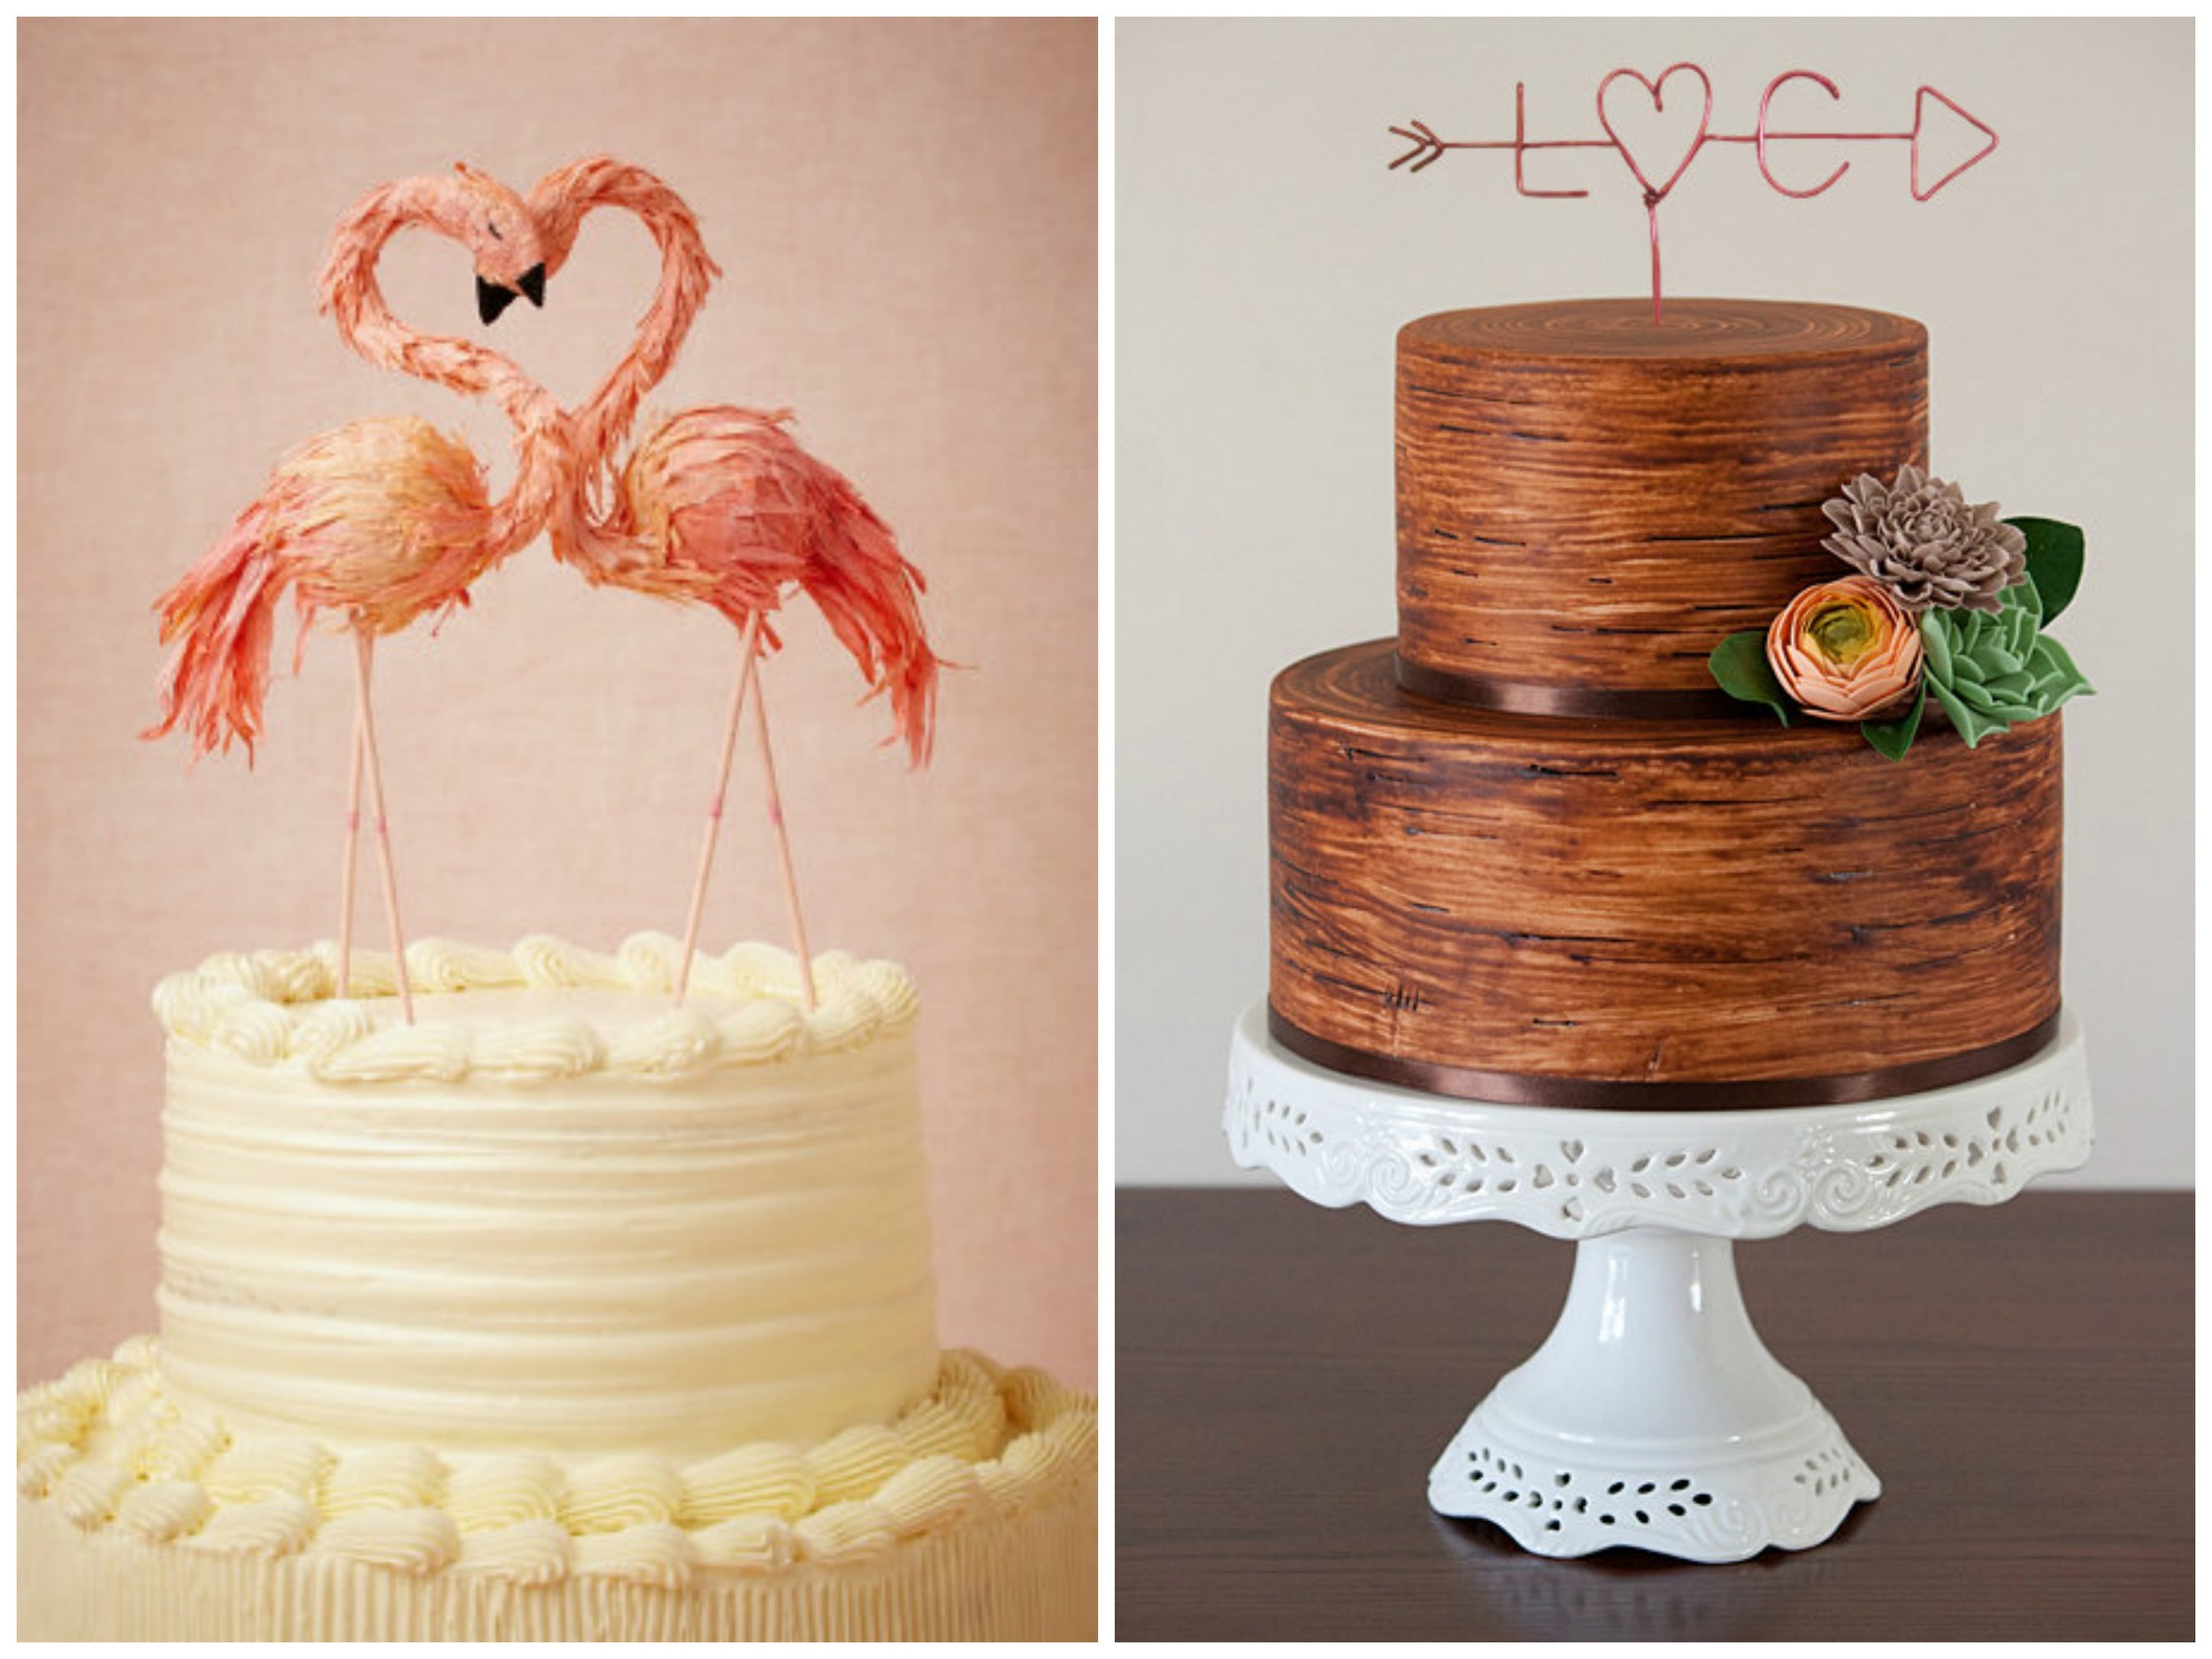 The  Flaming Flamingo  cake topper ($138) from  BHLDN  is quirky and so. darn. precious. It would be so cute on a pink cake, or for a fun, colorful summer wedding! The  arrow topper  ($16.99+) is from  Le Rustic Chic and it's available in lots of fun colors.